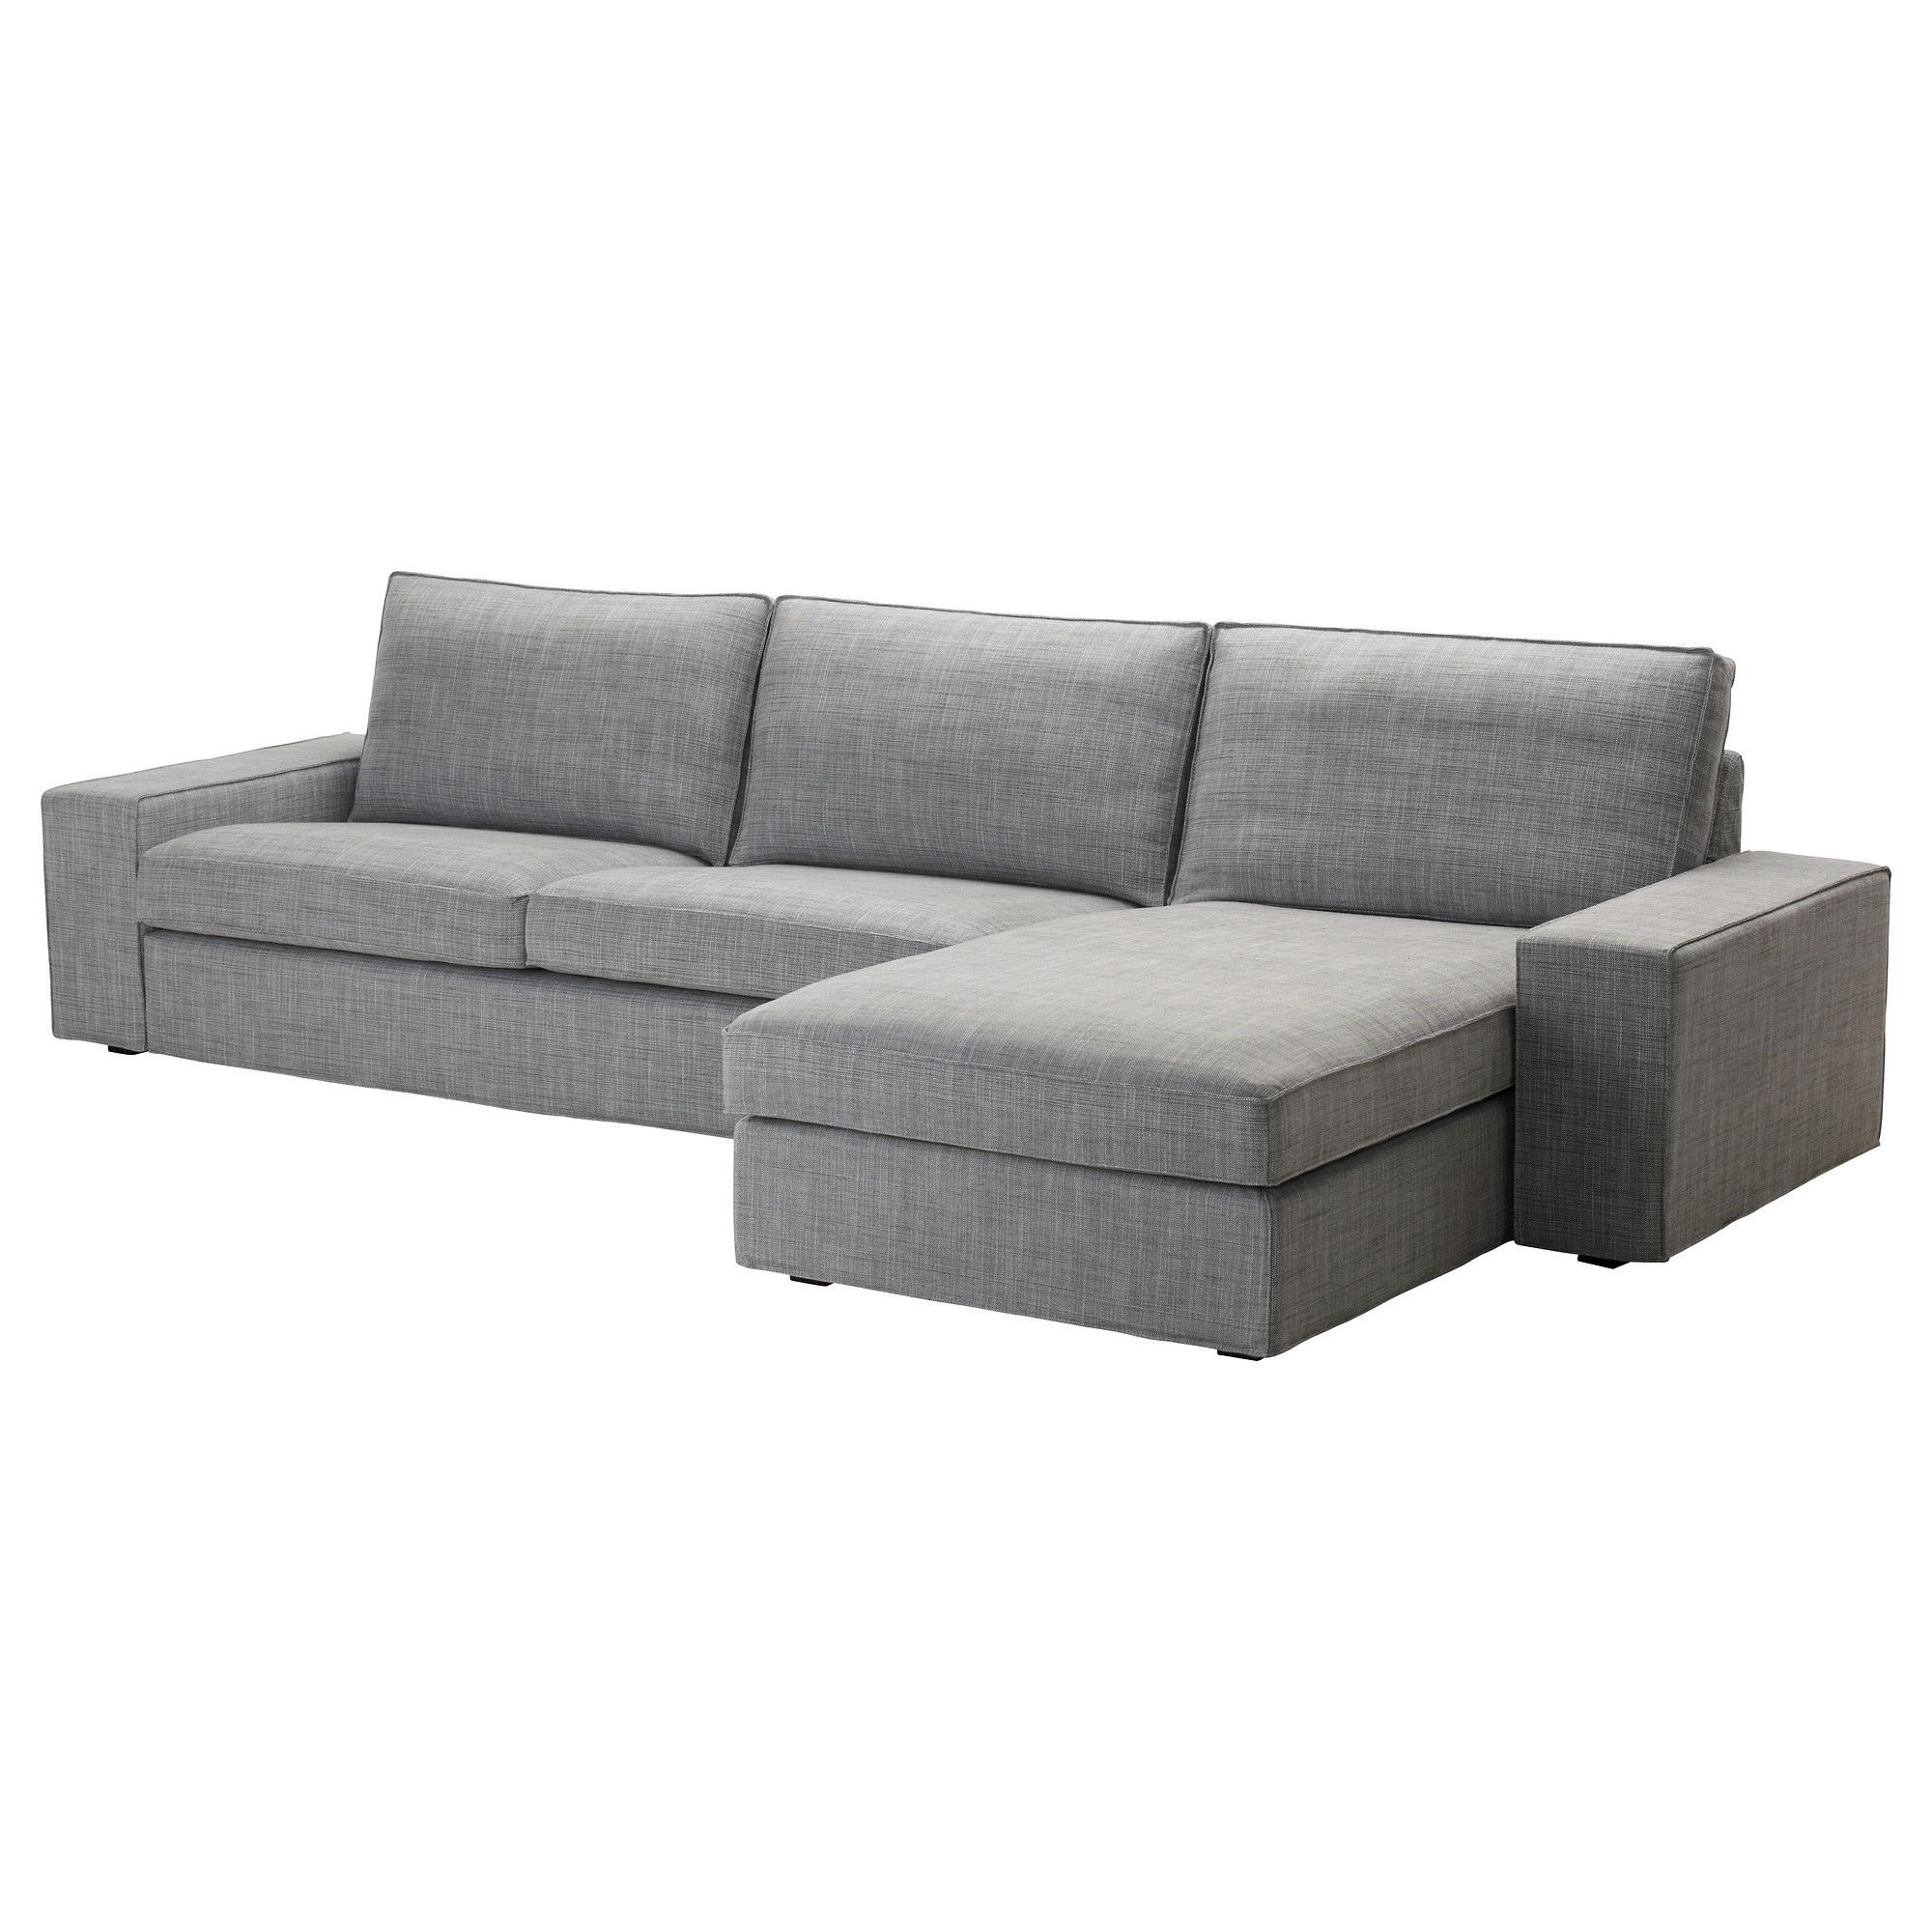 Ikea Kivik Sessel Kivik Sofa And Chaise Lounge Isunda Gray Ikea Living Room